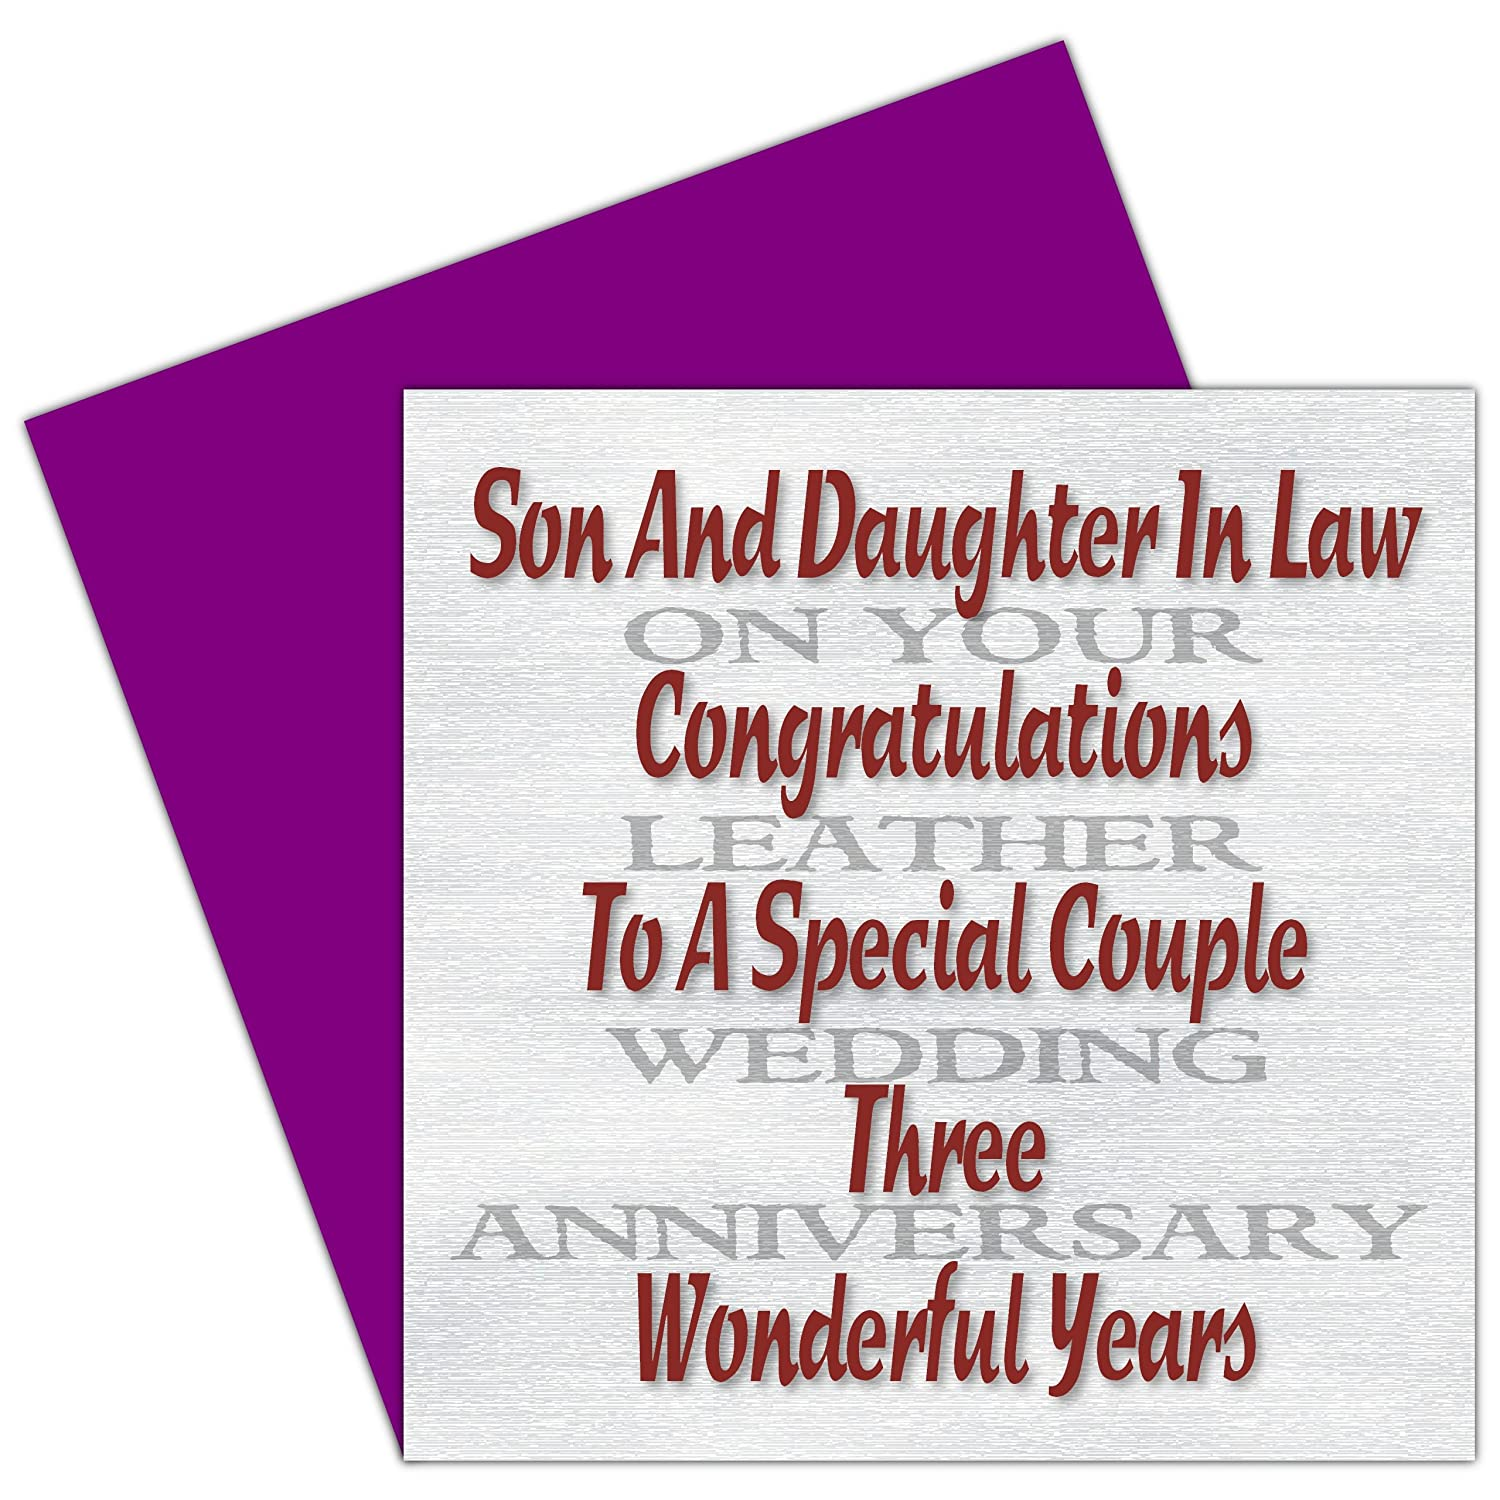 Wedding Anniversary Gifts For Son And Daughter In Law